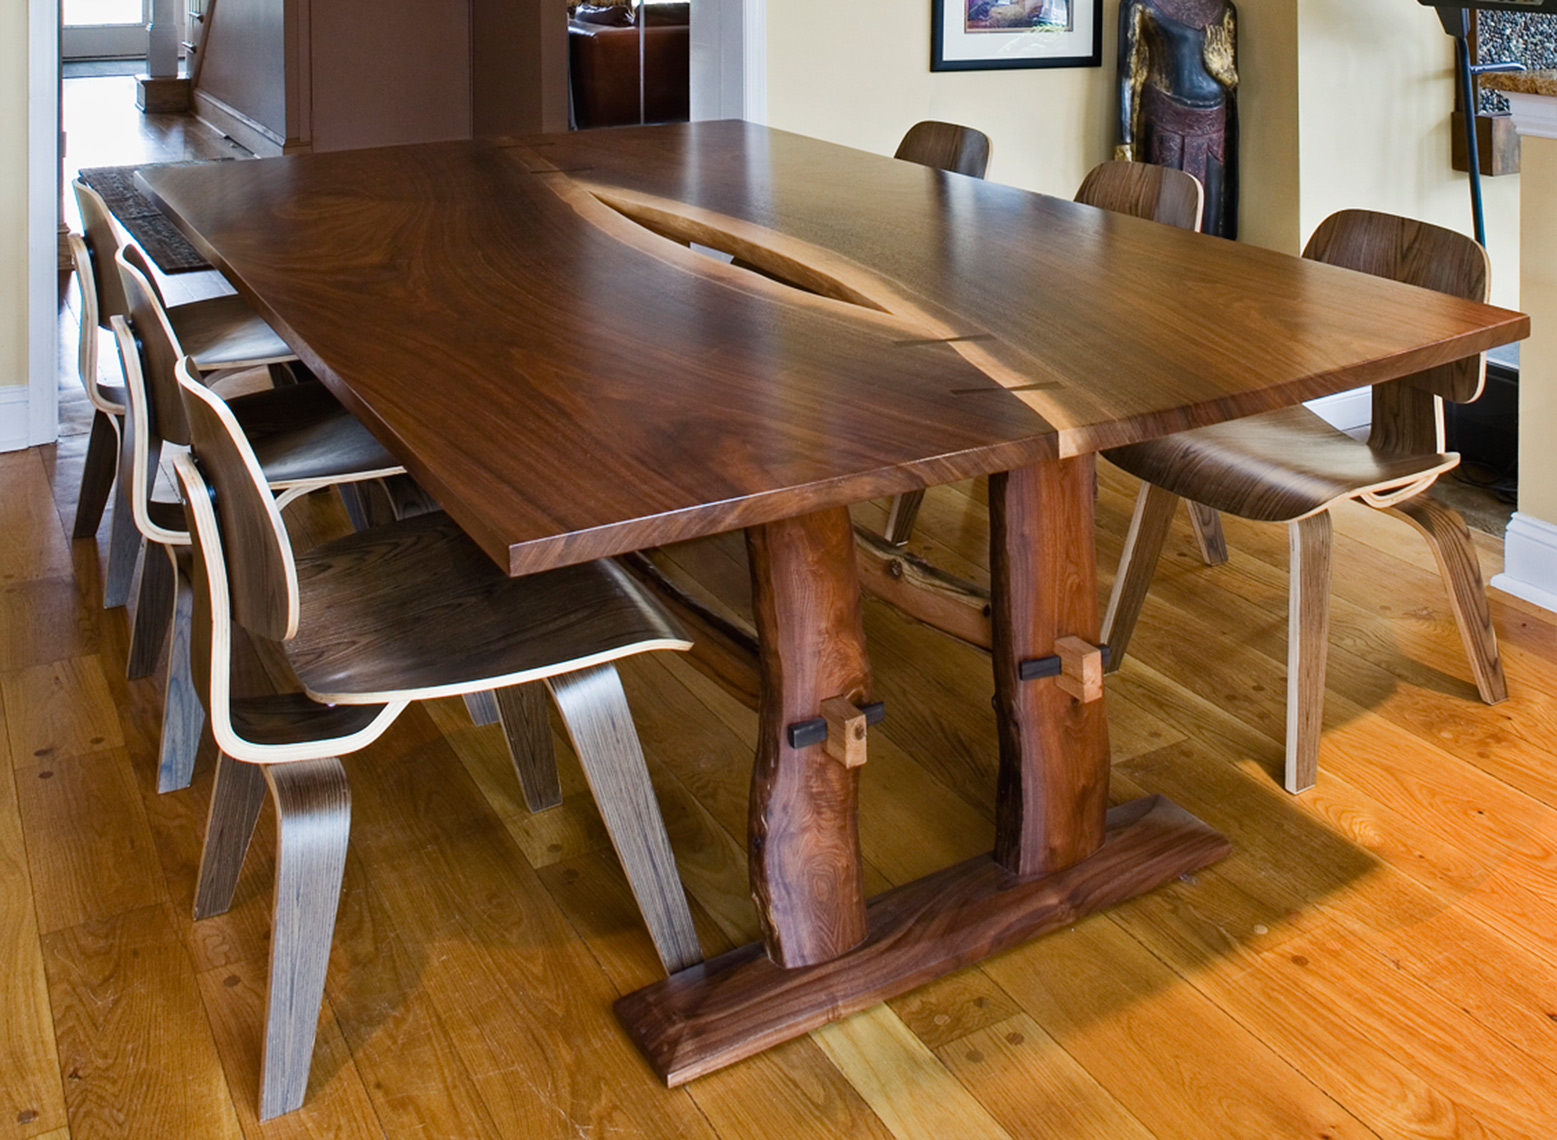 Book Matched solid Walnut Table with-Branch-Base--Custom-Furniture, rustic 1